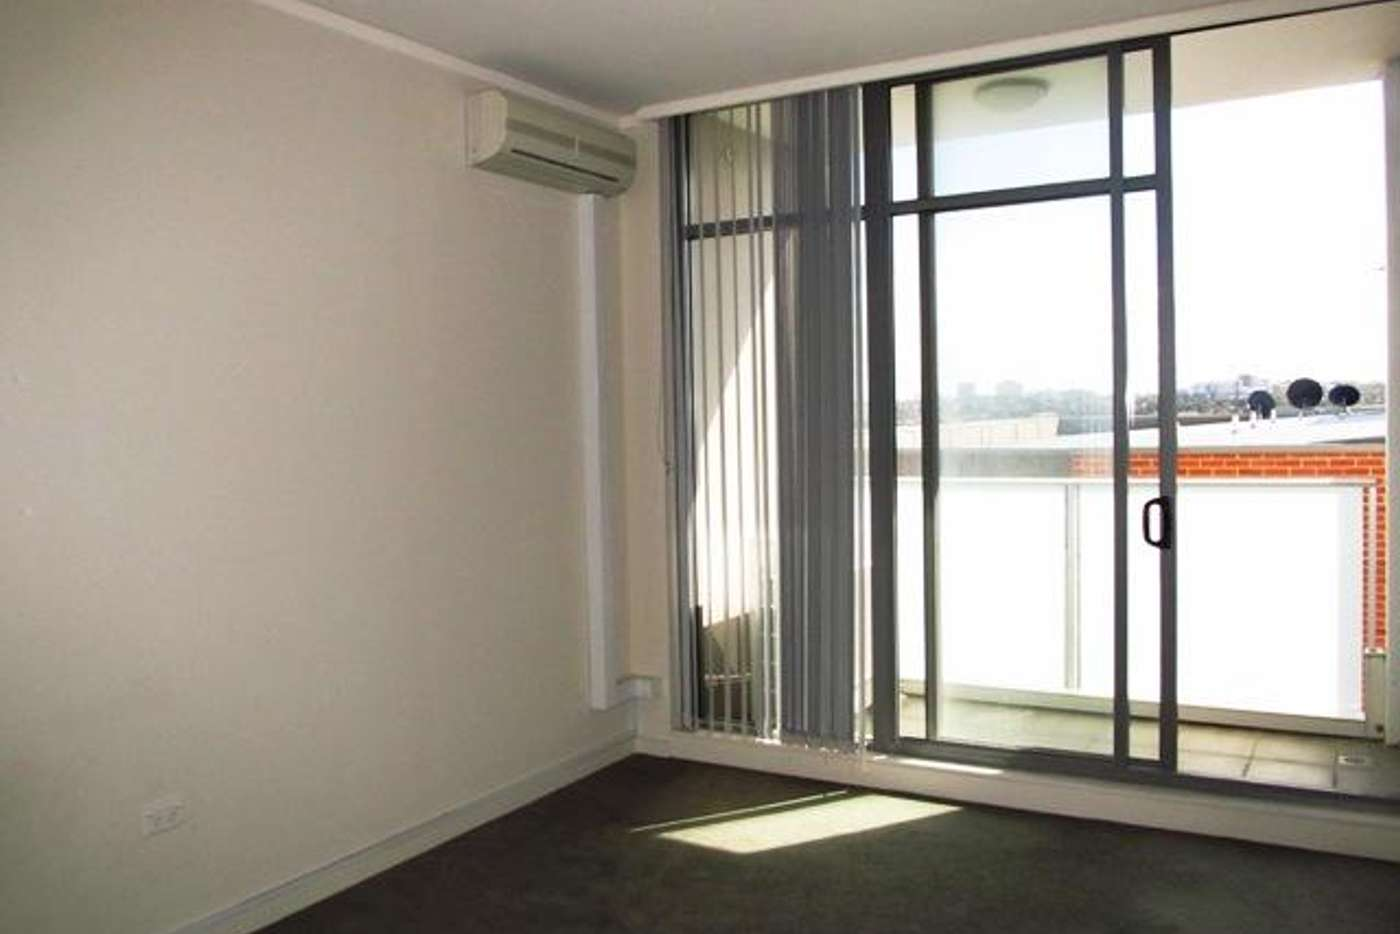 Seventh view of Homely apartment listing, 811/1 Bruce Bennett Place, Maroubra NSW 2035